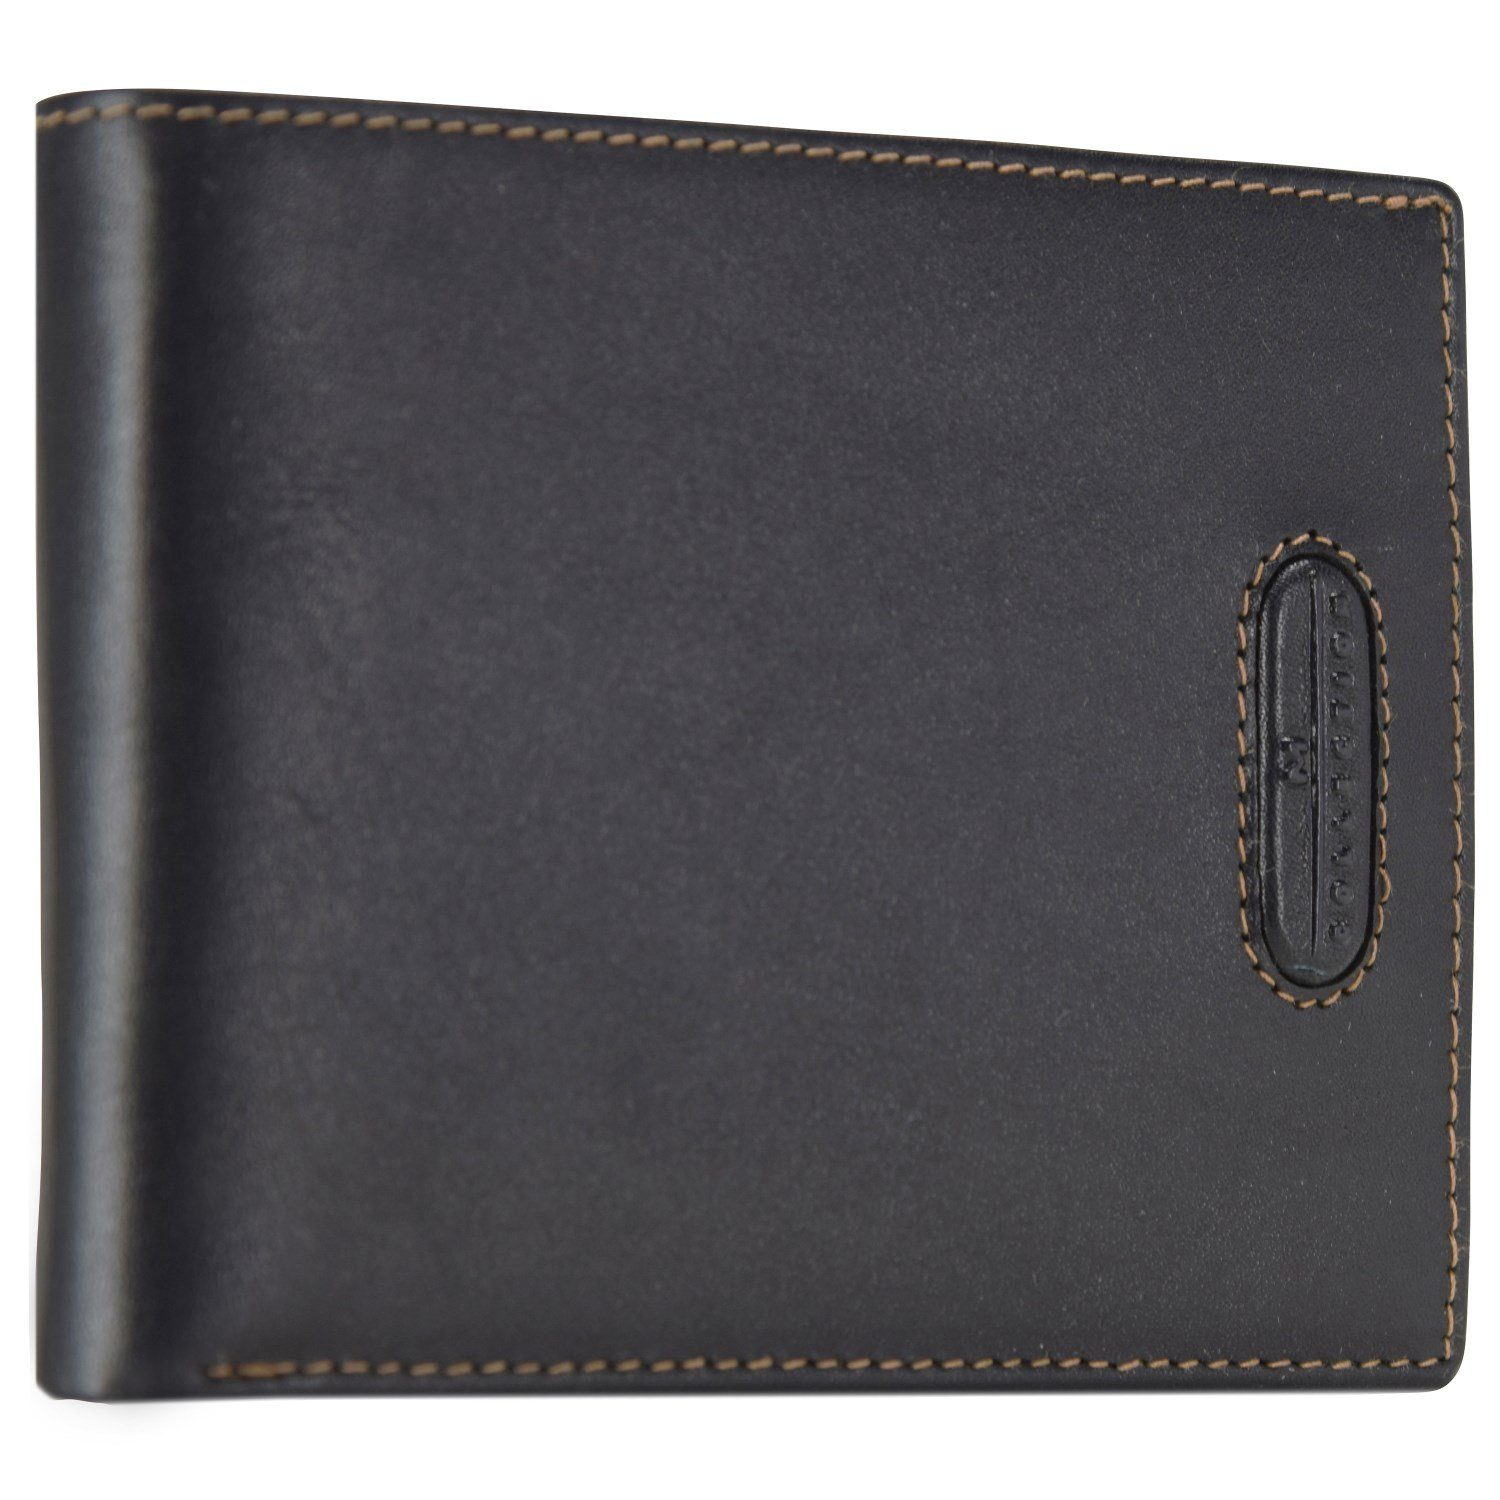 Maître M-Collection Merlin Gathman BillFold H12 Geldbörse Leder 13 cm